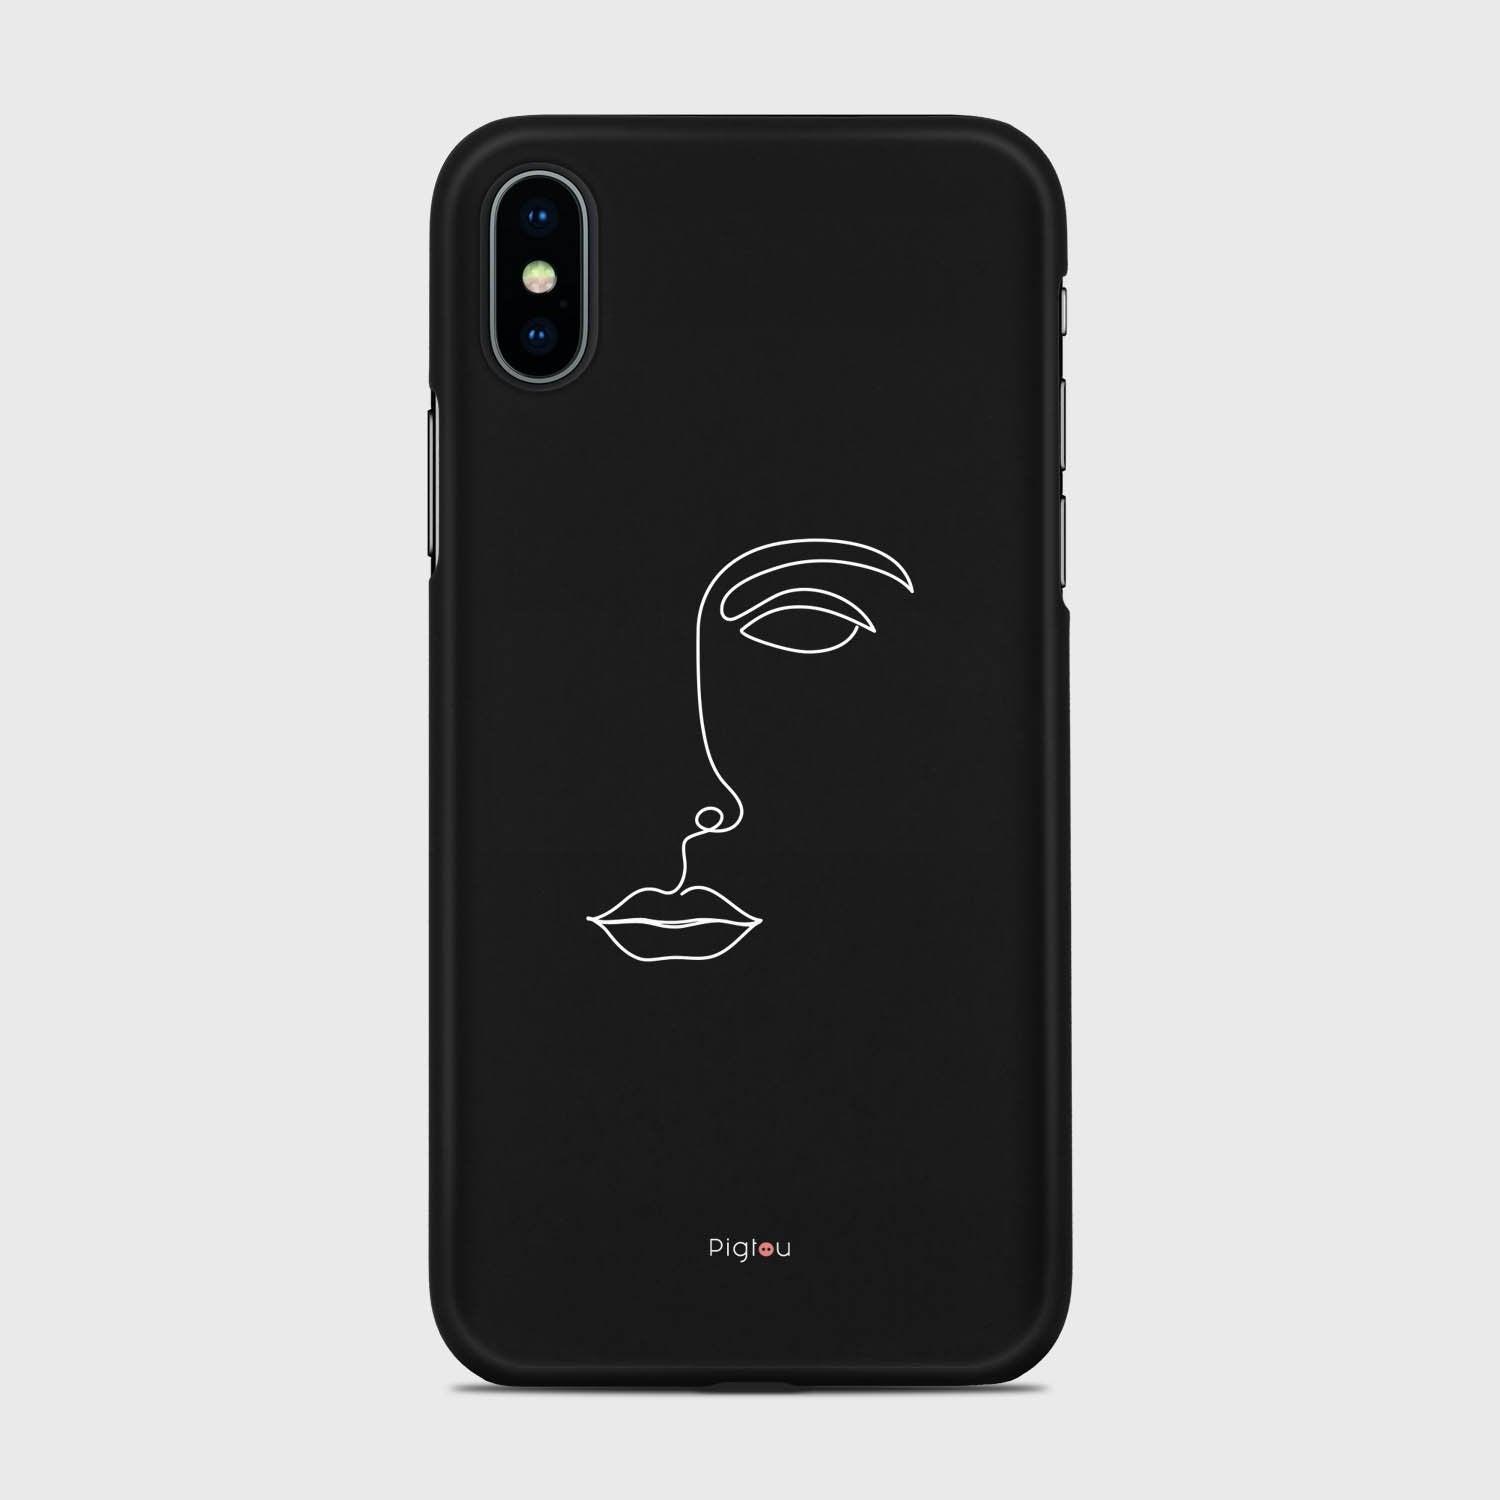 SILHOUETTE FACE iPhone 12 Pro Max cases | Pigtou